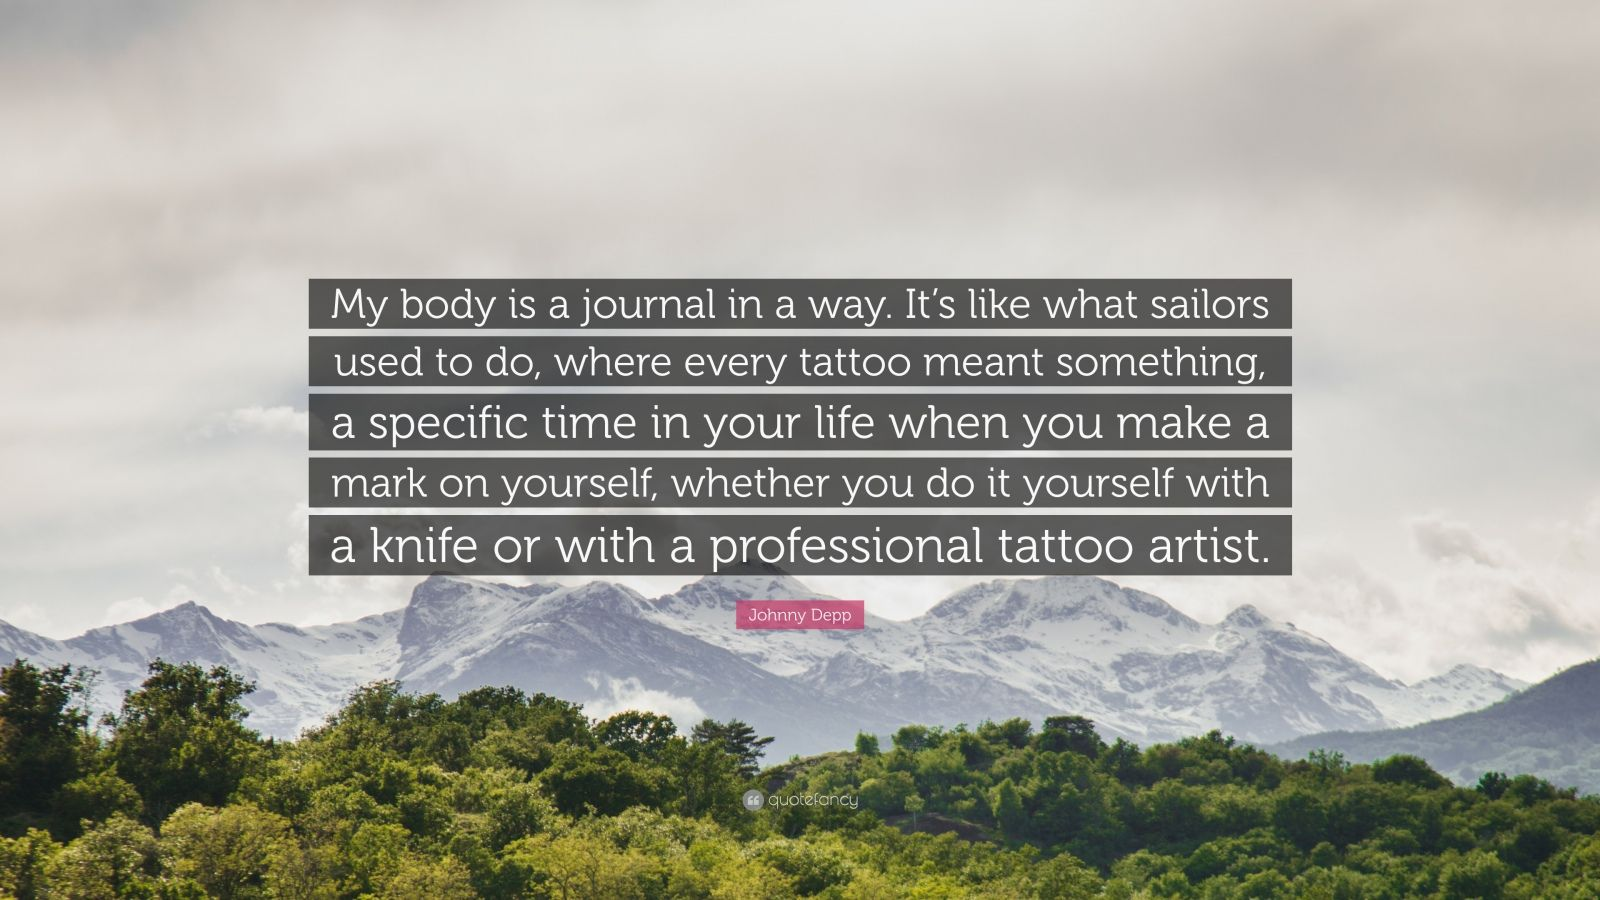 """Johnny Depp Quote: """"My body is a journal in a way. It's like what sailors used to do, where every tattoo meant something, a specific time in your life when you make a mark on yourself, whether you do it yourself with a knife or with a professional tattoo artist."""""""